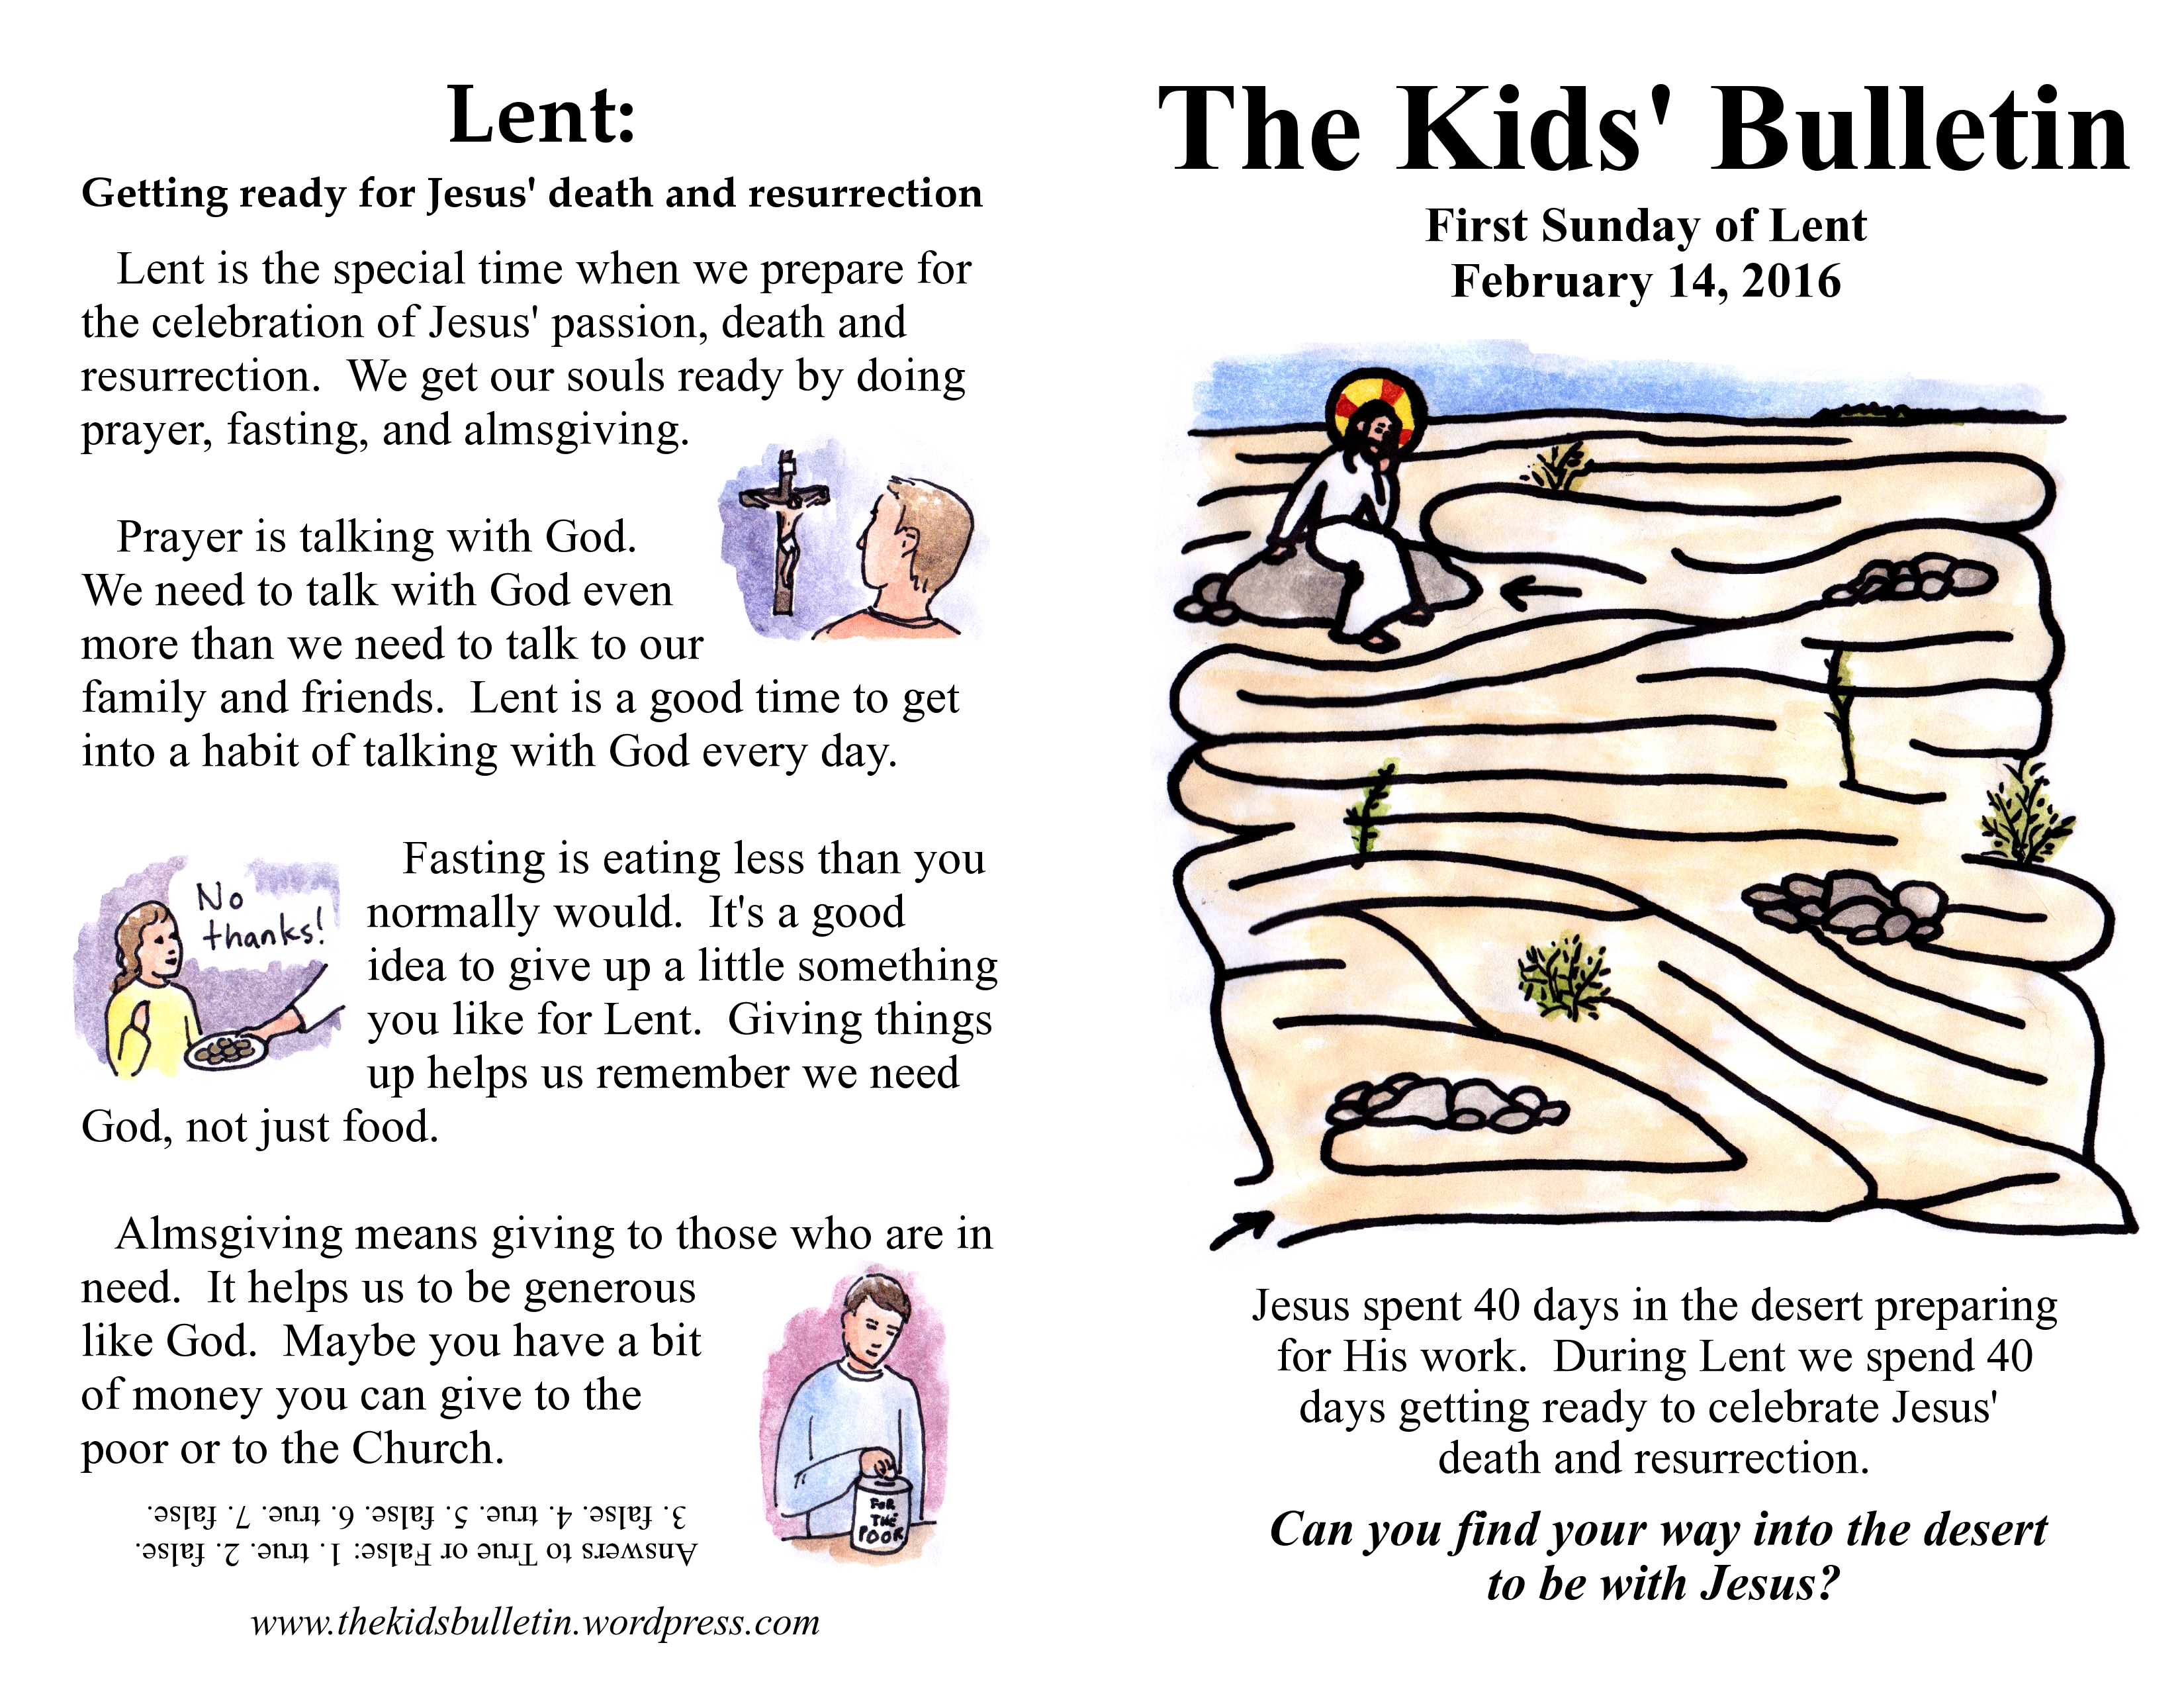 The Kids Bulletin 1st Sunday Of Lent